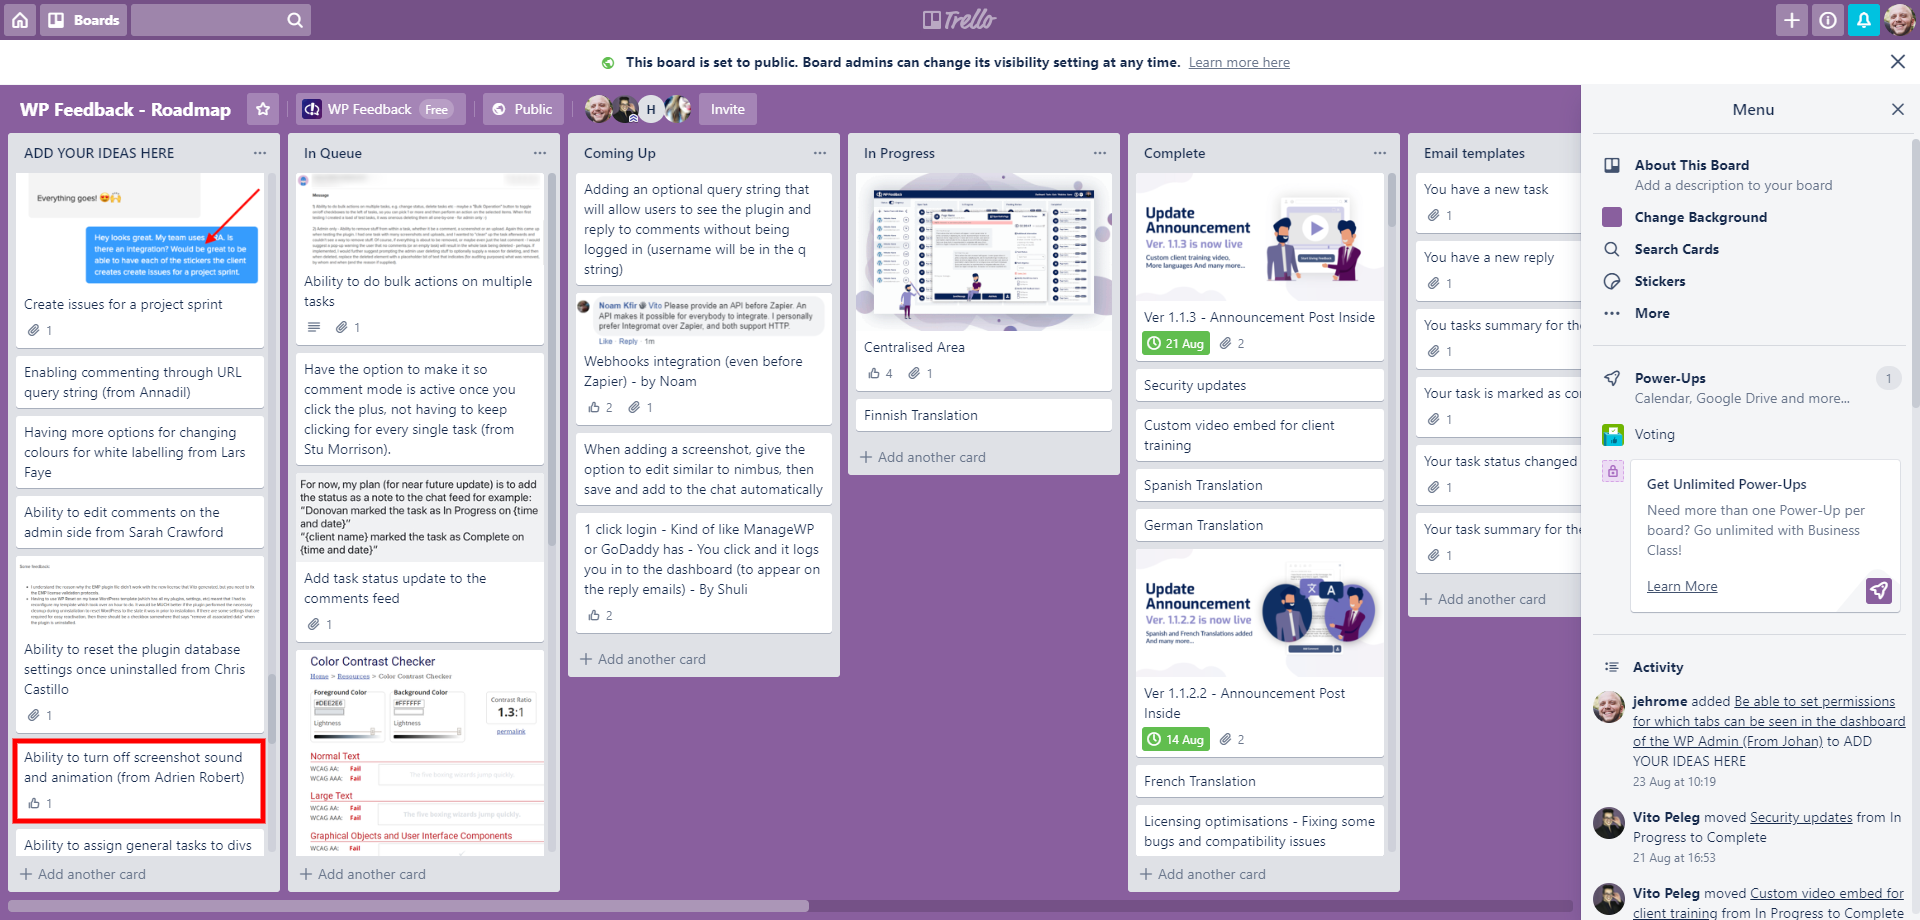 WP FeedBack Trello roadmap